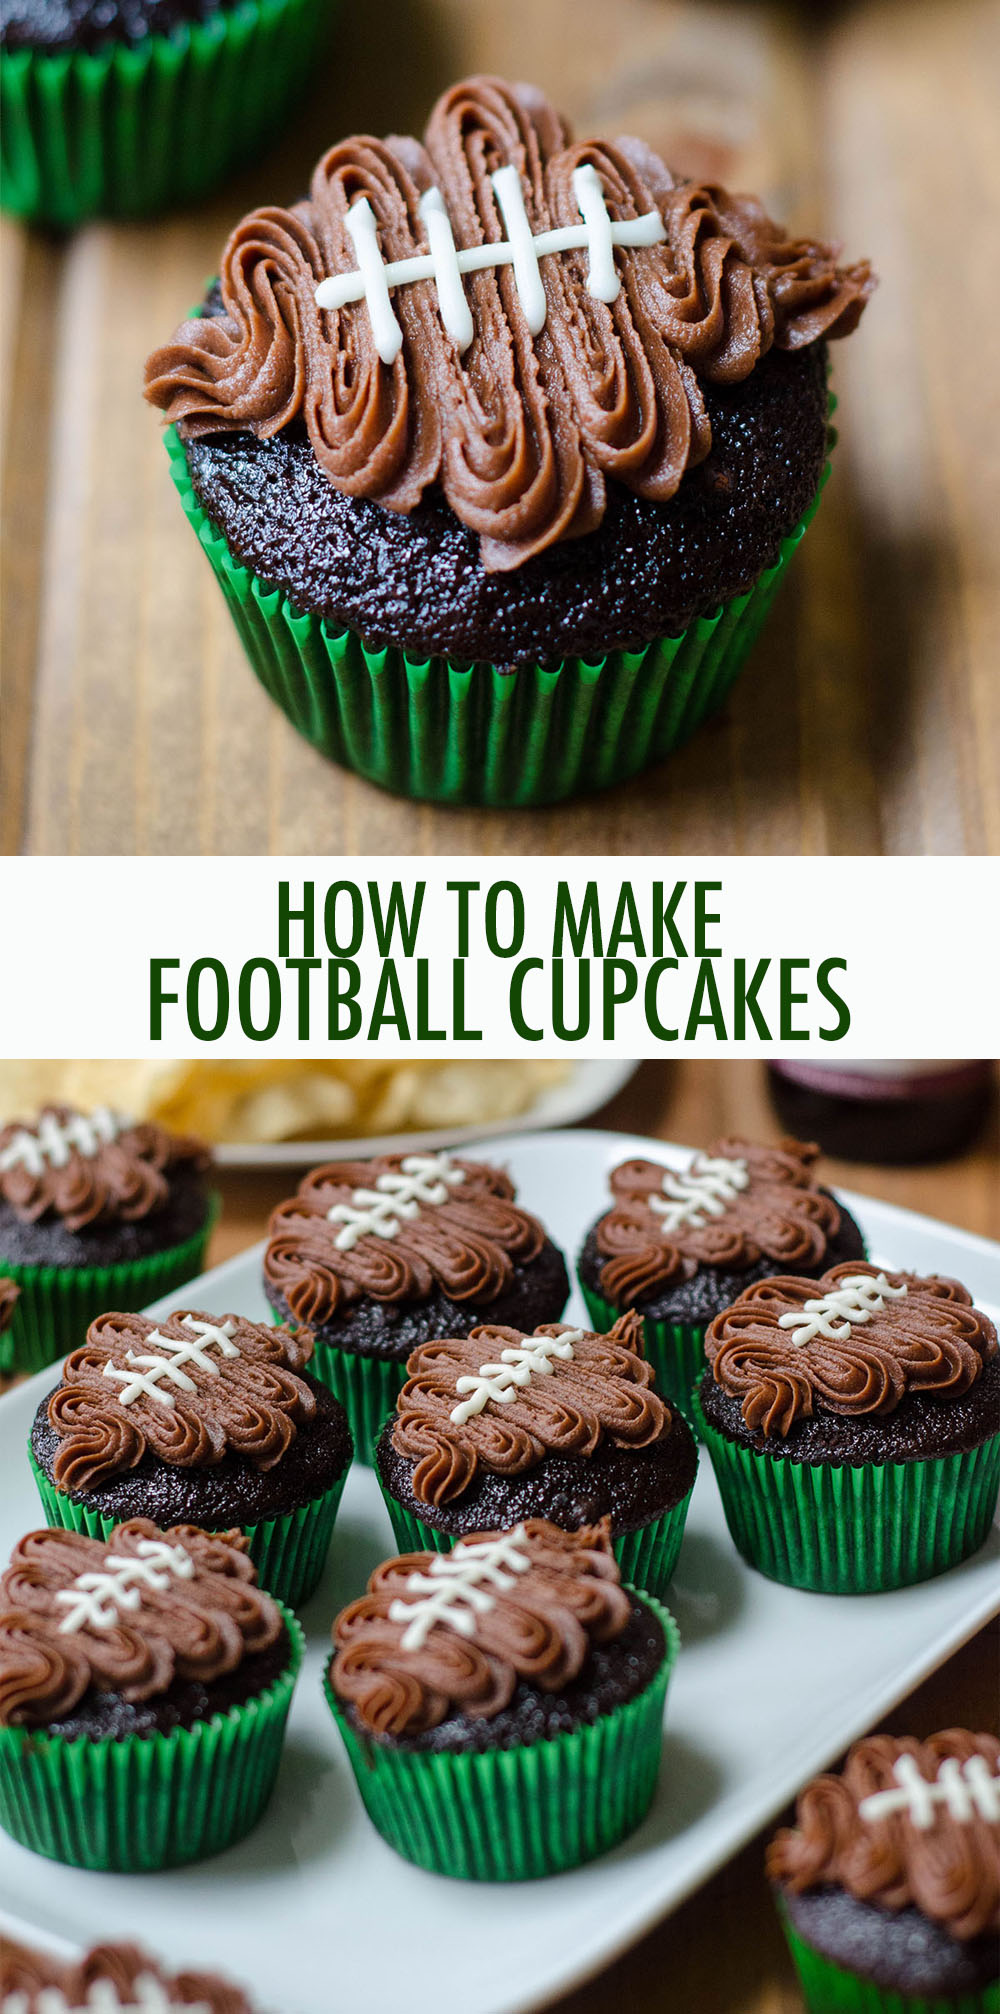 Turn any cupcake into a touchdown treat with this easy tutorial and video!